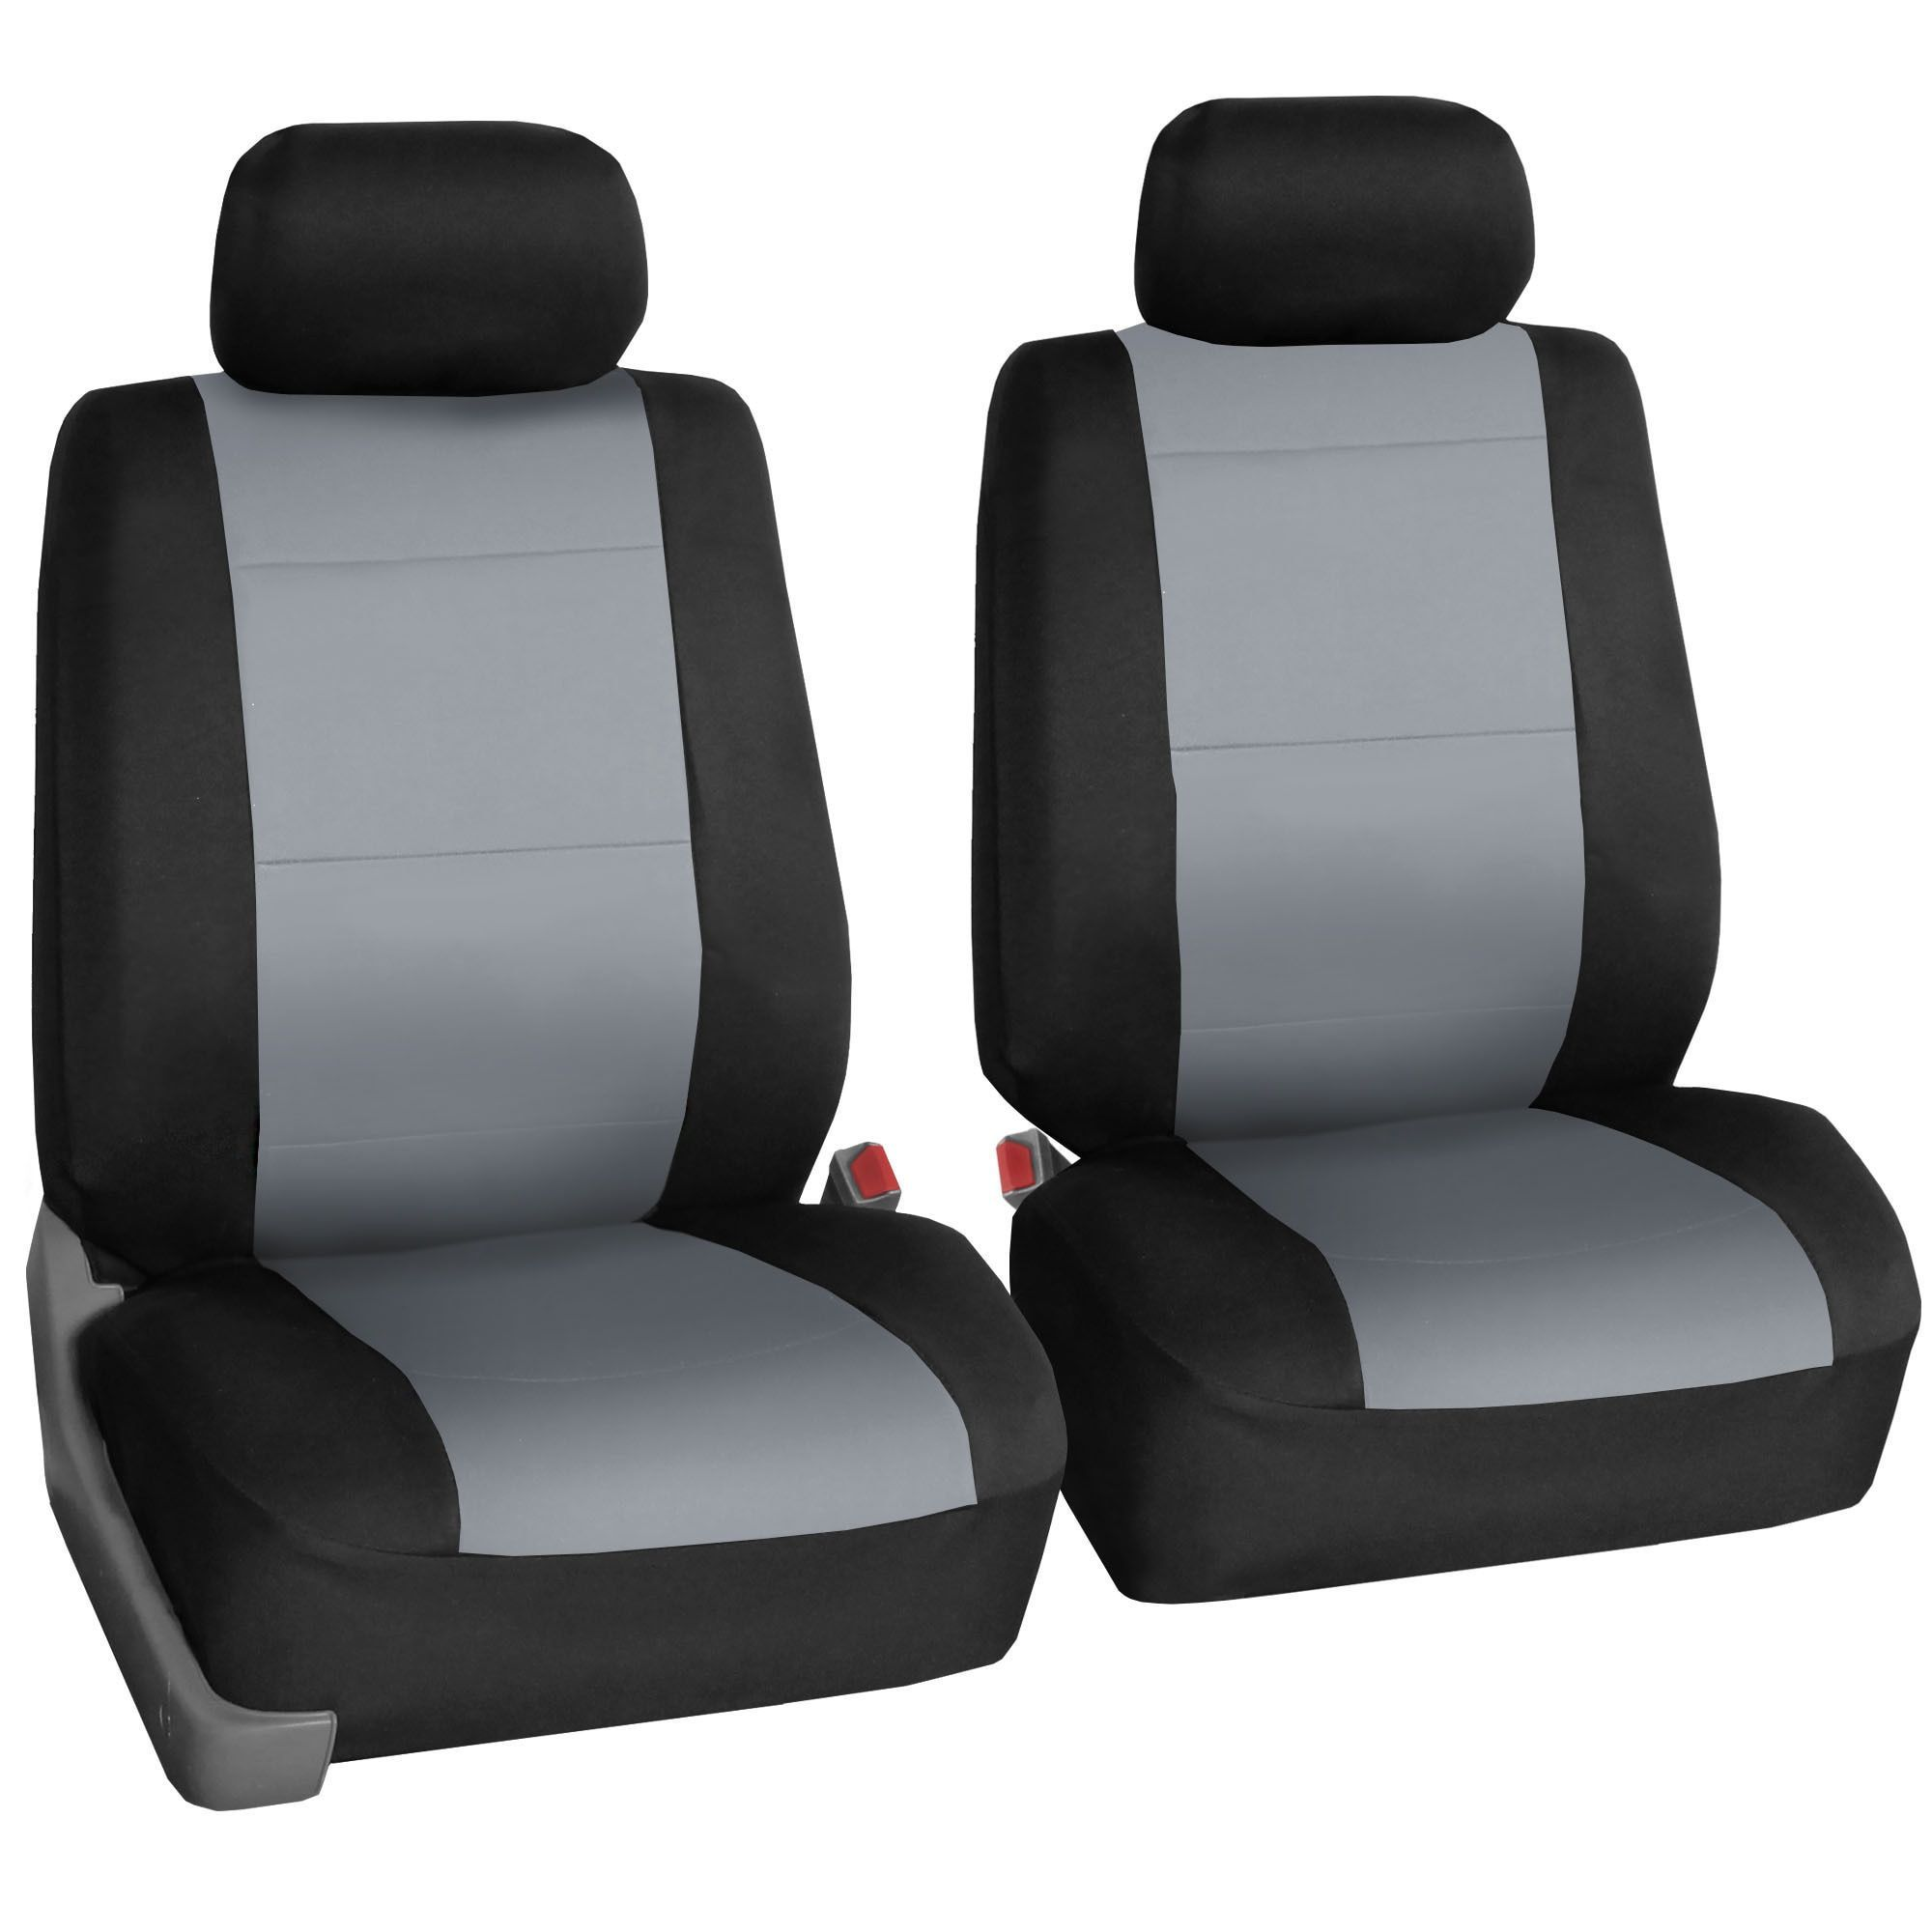 FH Group Neoprene Water Resistent Bucket Seat Covers Gray (Set of 2) Airbag Compatible (Gray), Black